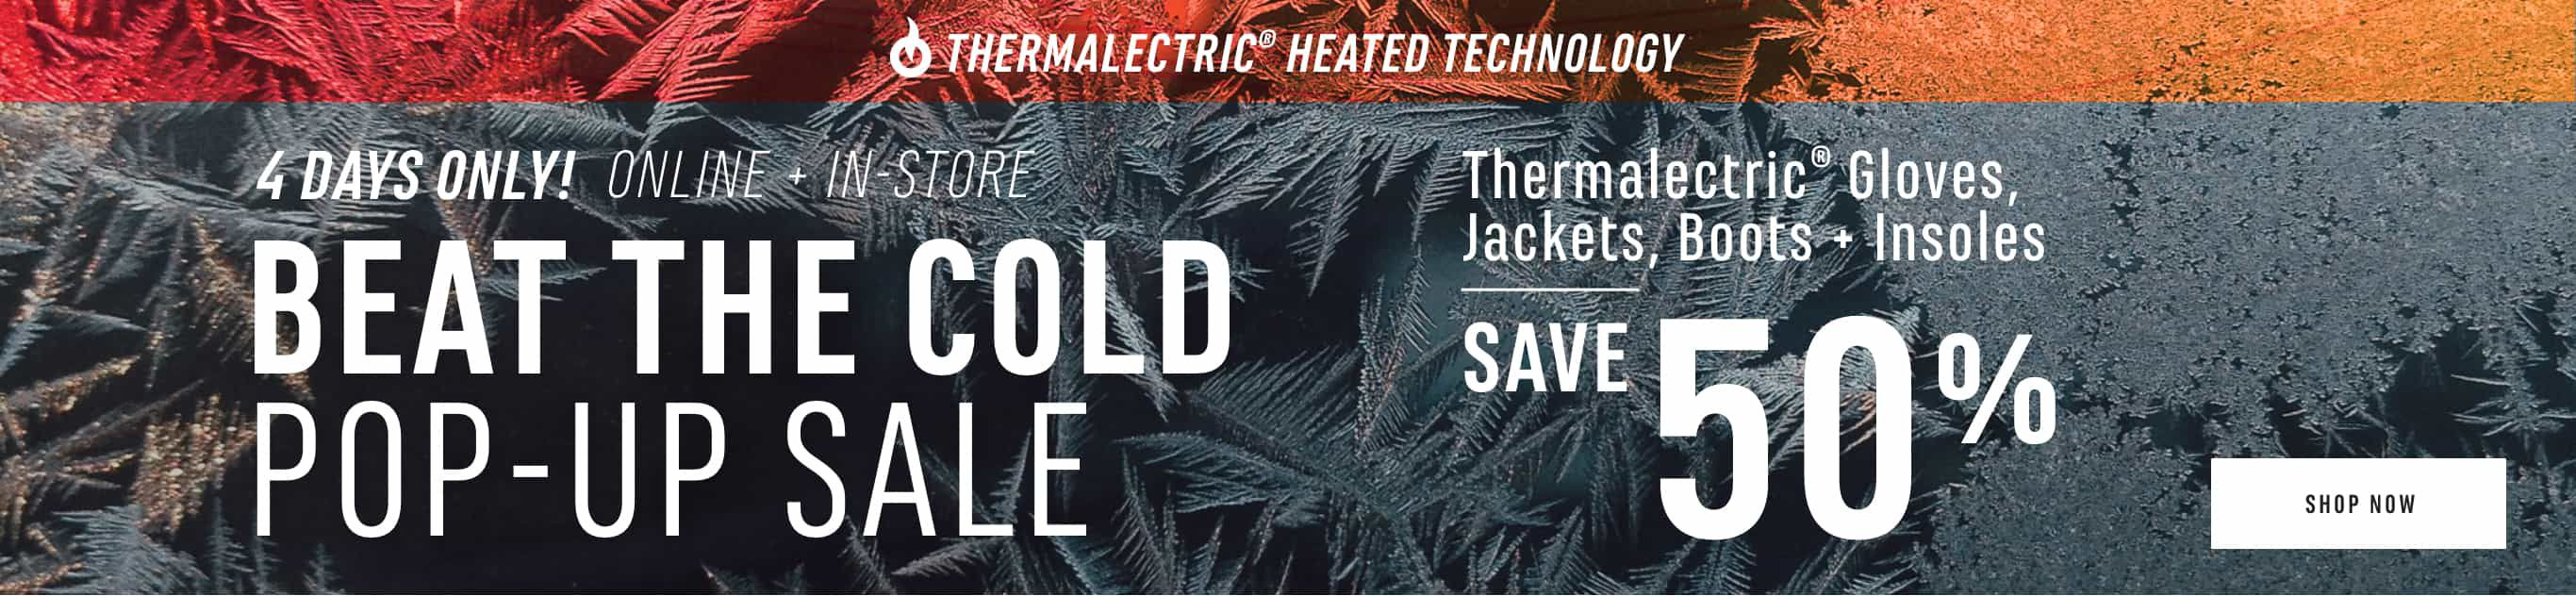 4 Days Only! Online and In-store. Beat the Cold Pop-up Sale. Thermalectric Gloves, Jackets and Insoles Save 50%. Shop Now.